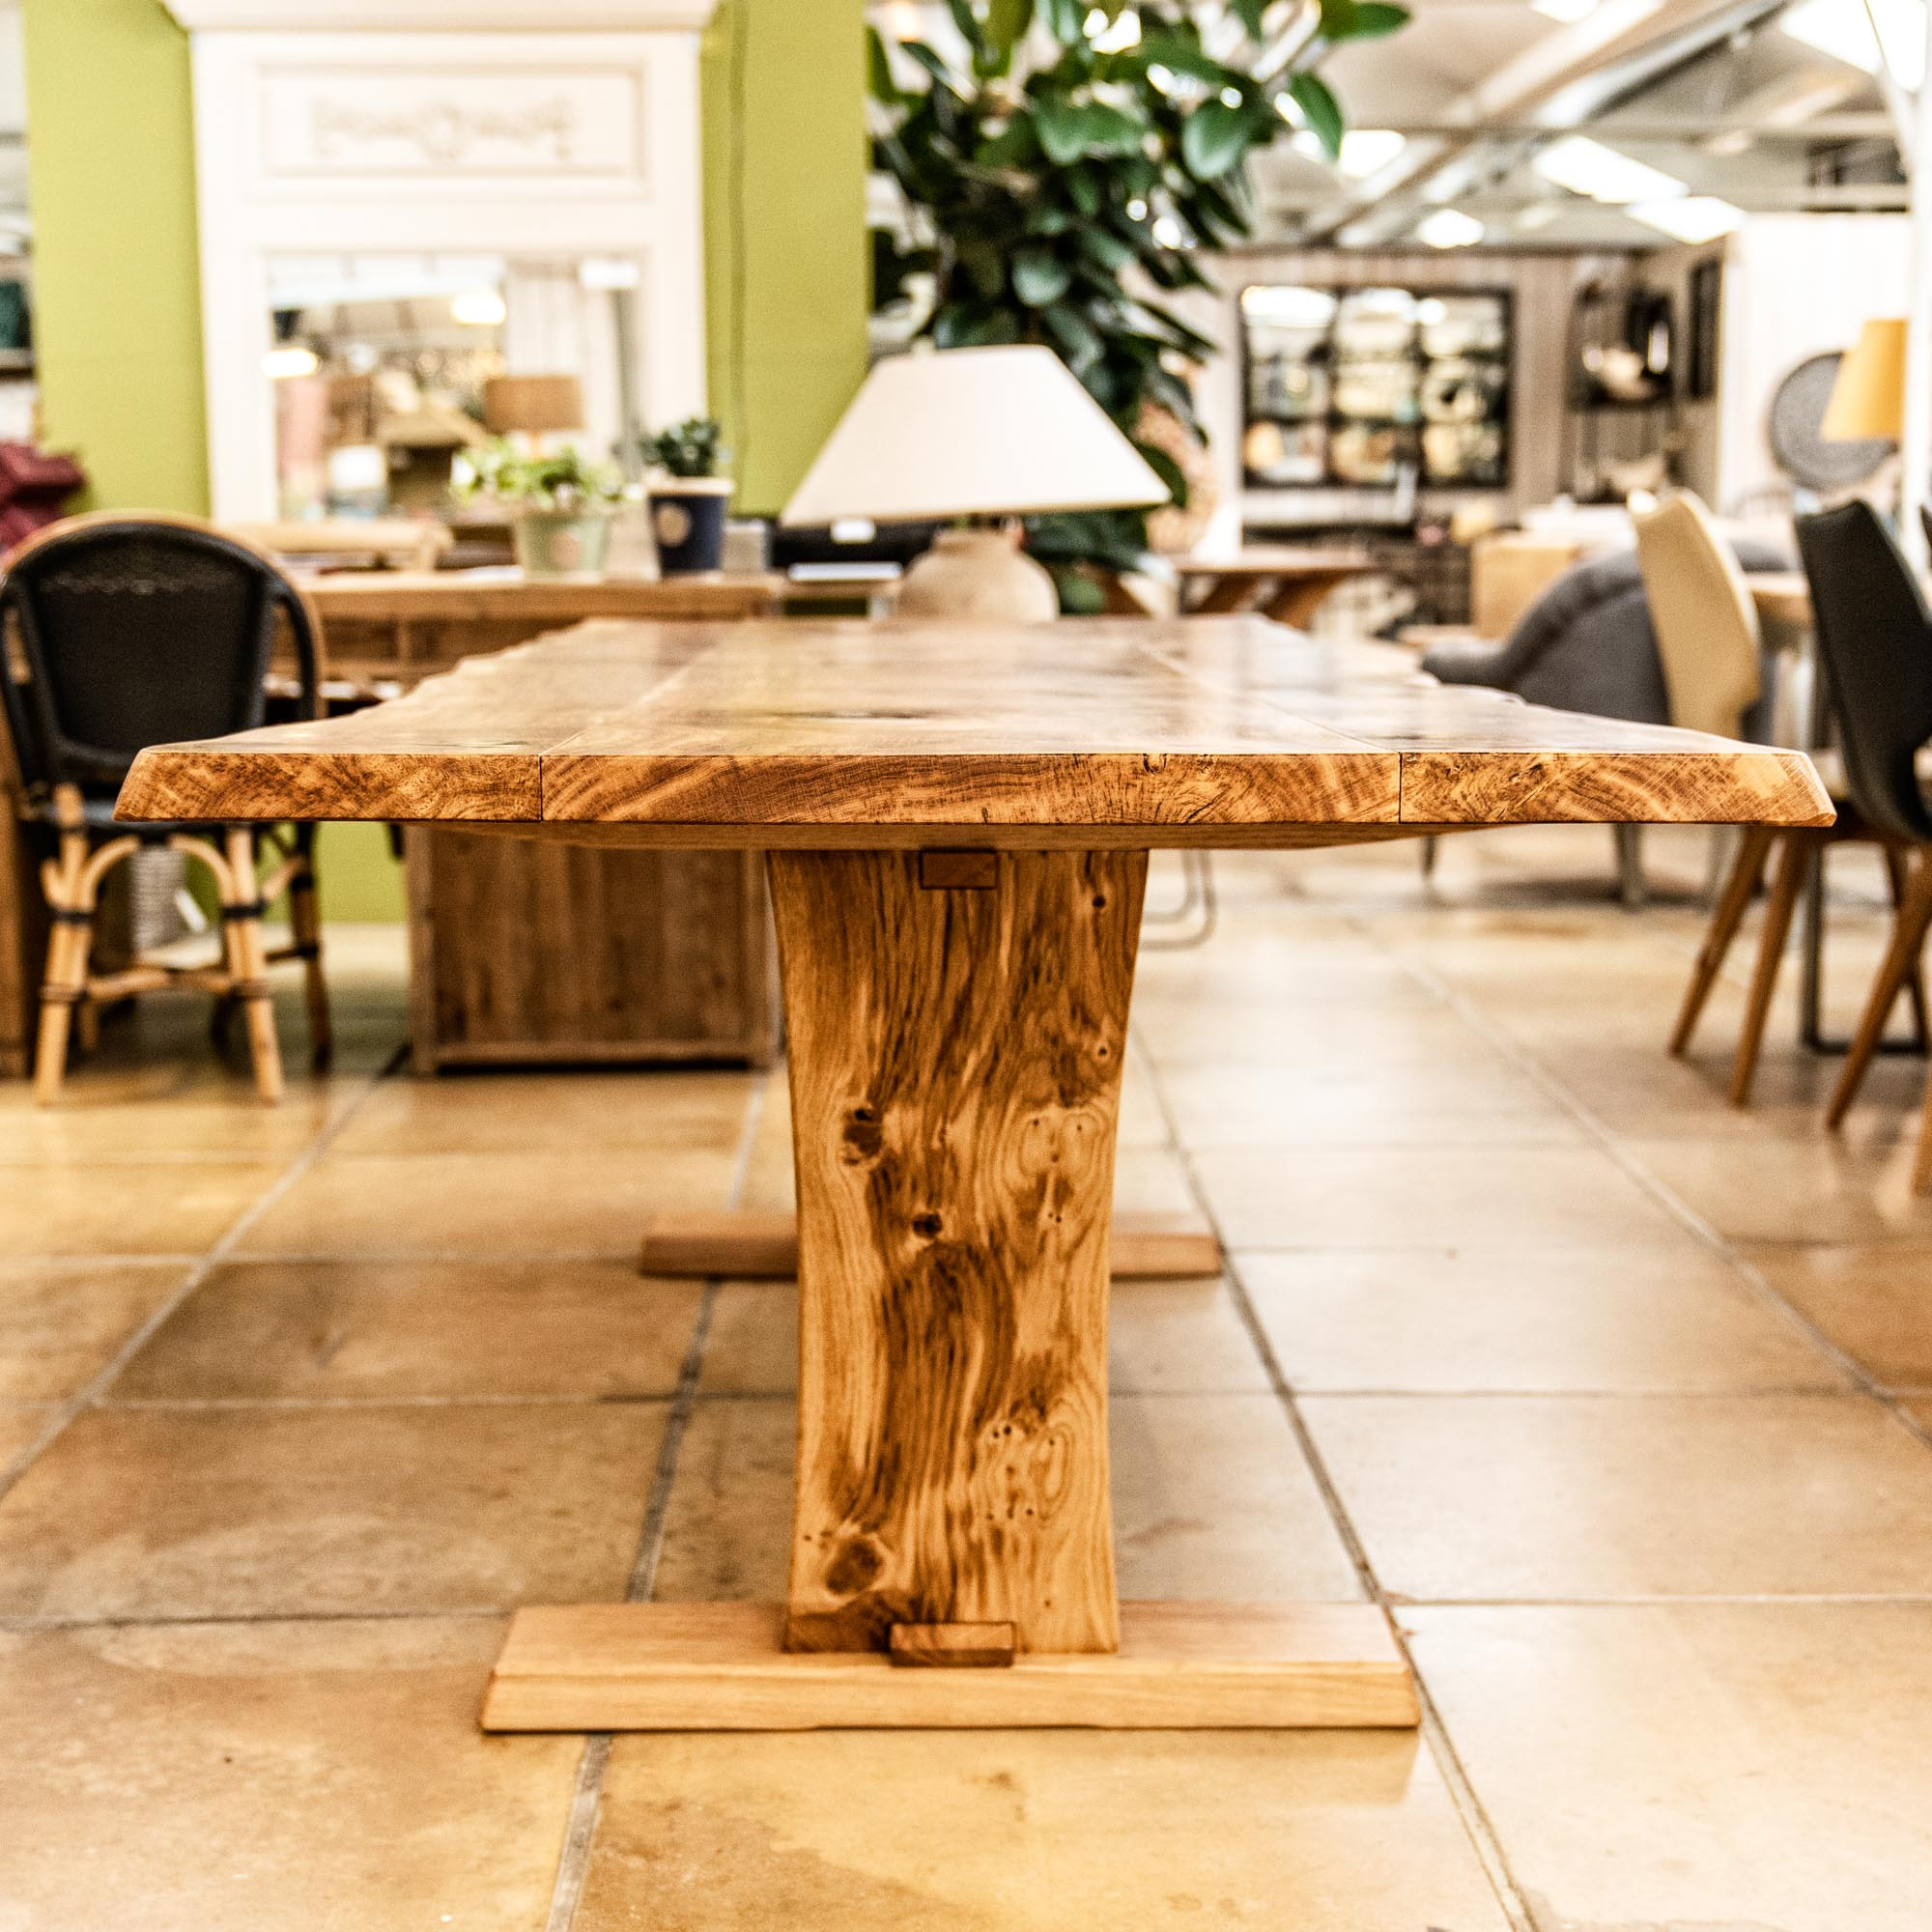 Buy handcrafted oak planked trestle table quality handmade furniture burford garden company